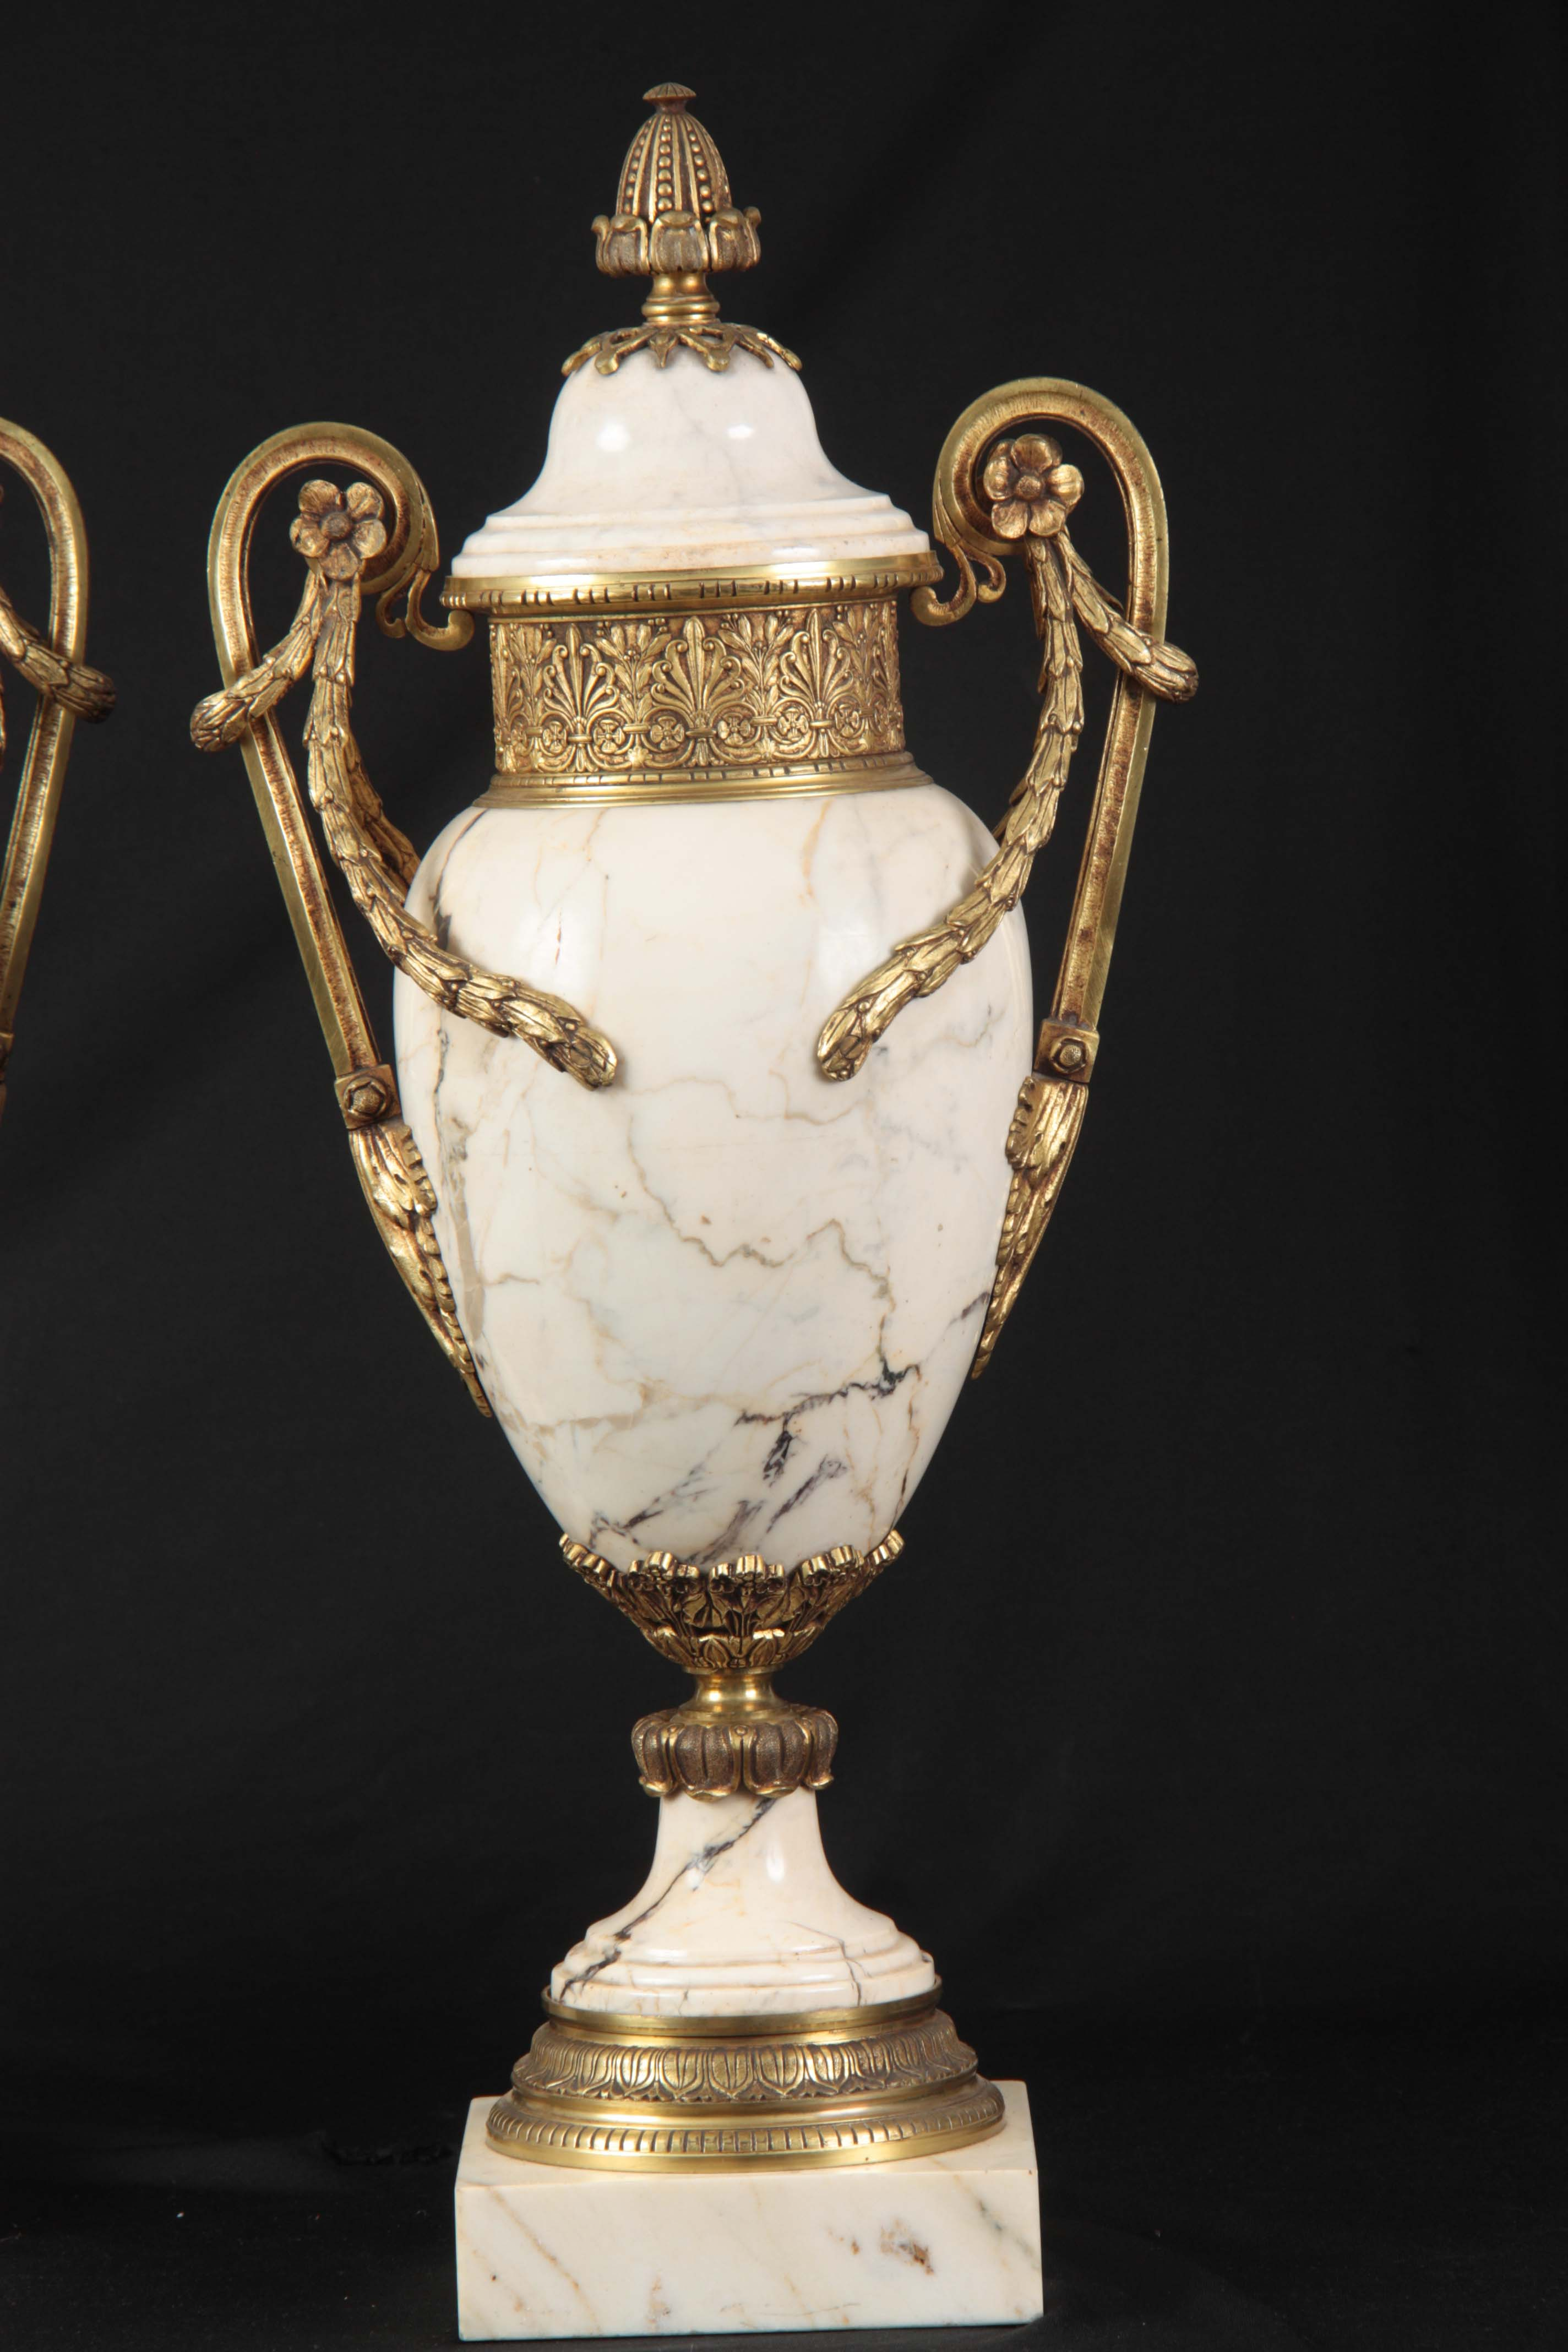 AN IMPRESSIVE PAIR OF FRENCH ORMOLU MOUNTED VEINED WHITE MARBLE CASOLETTES with floral swag work - Image 2 of 8